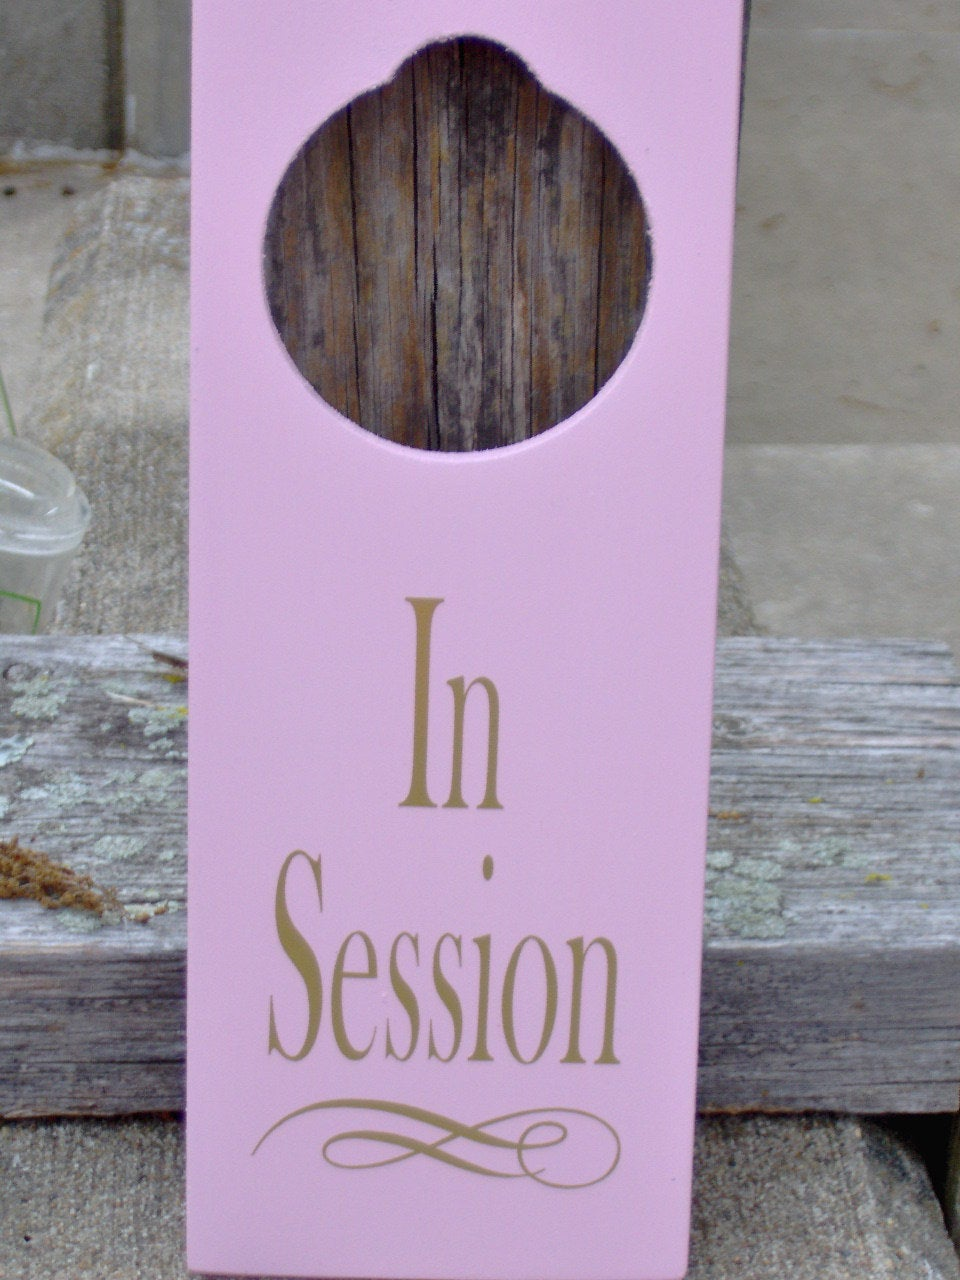 In Session Sign Door Knob Hanger Wood Vinyl Pink Home Office Supply Spa Salon Massage Therapy Health Wellness New Business Signage Decor - Heartfelt Giver